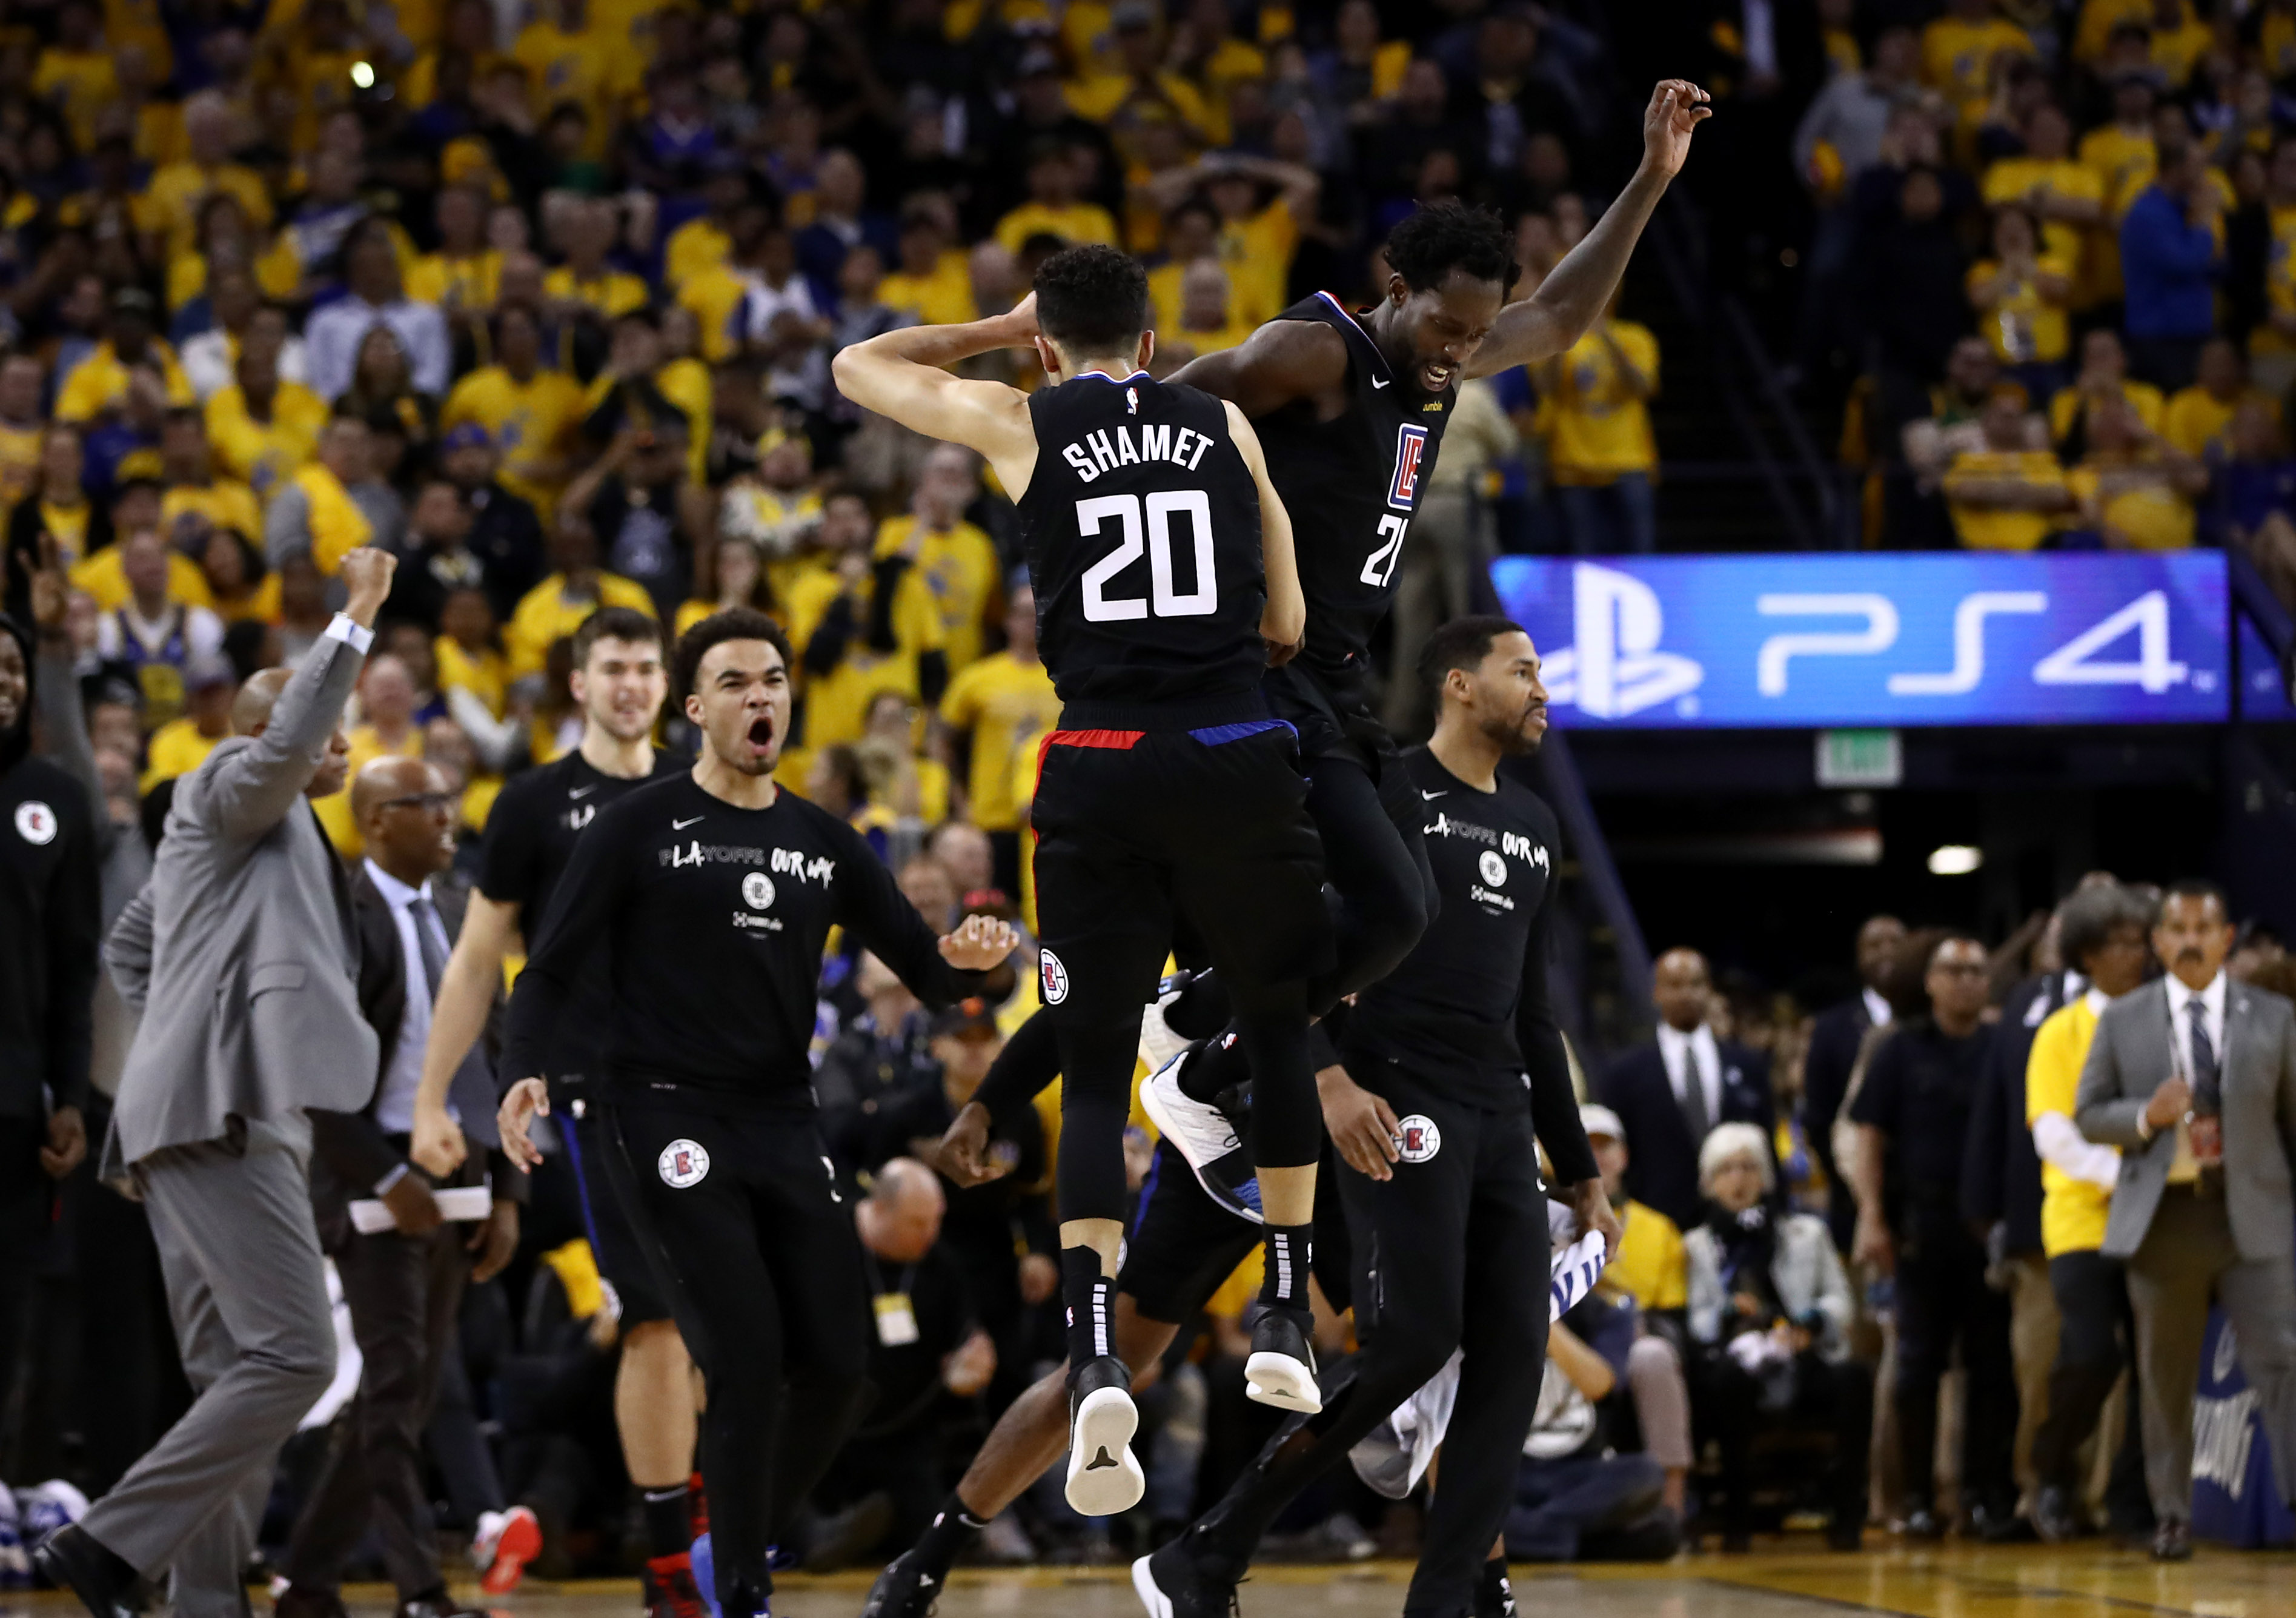 LA Clippers guard Landry Shamet of the LA Clippers is congratulated by Patrick Beverley after making a go-ahead jumper against the Golden State Warriors. (Ezra Shaw/Getty Images)